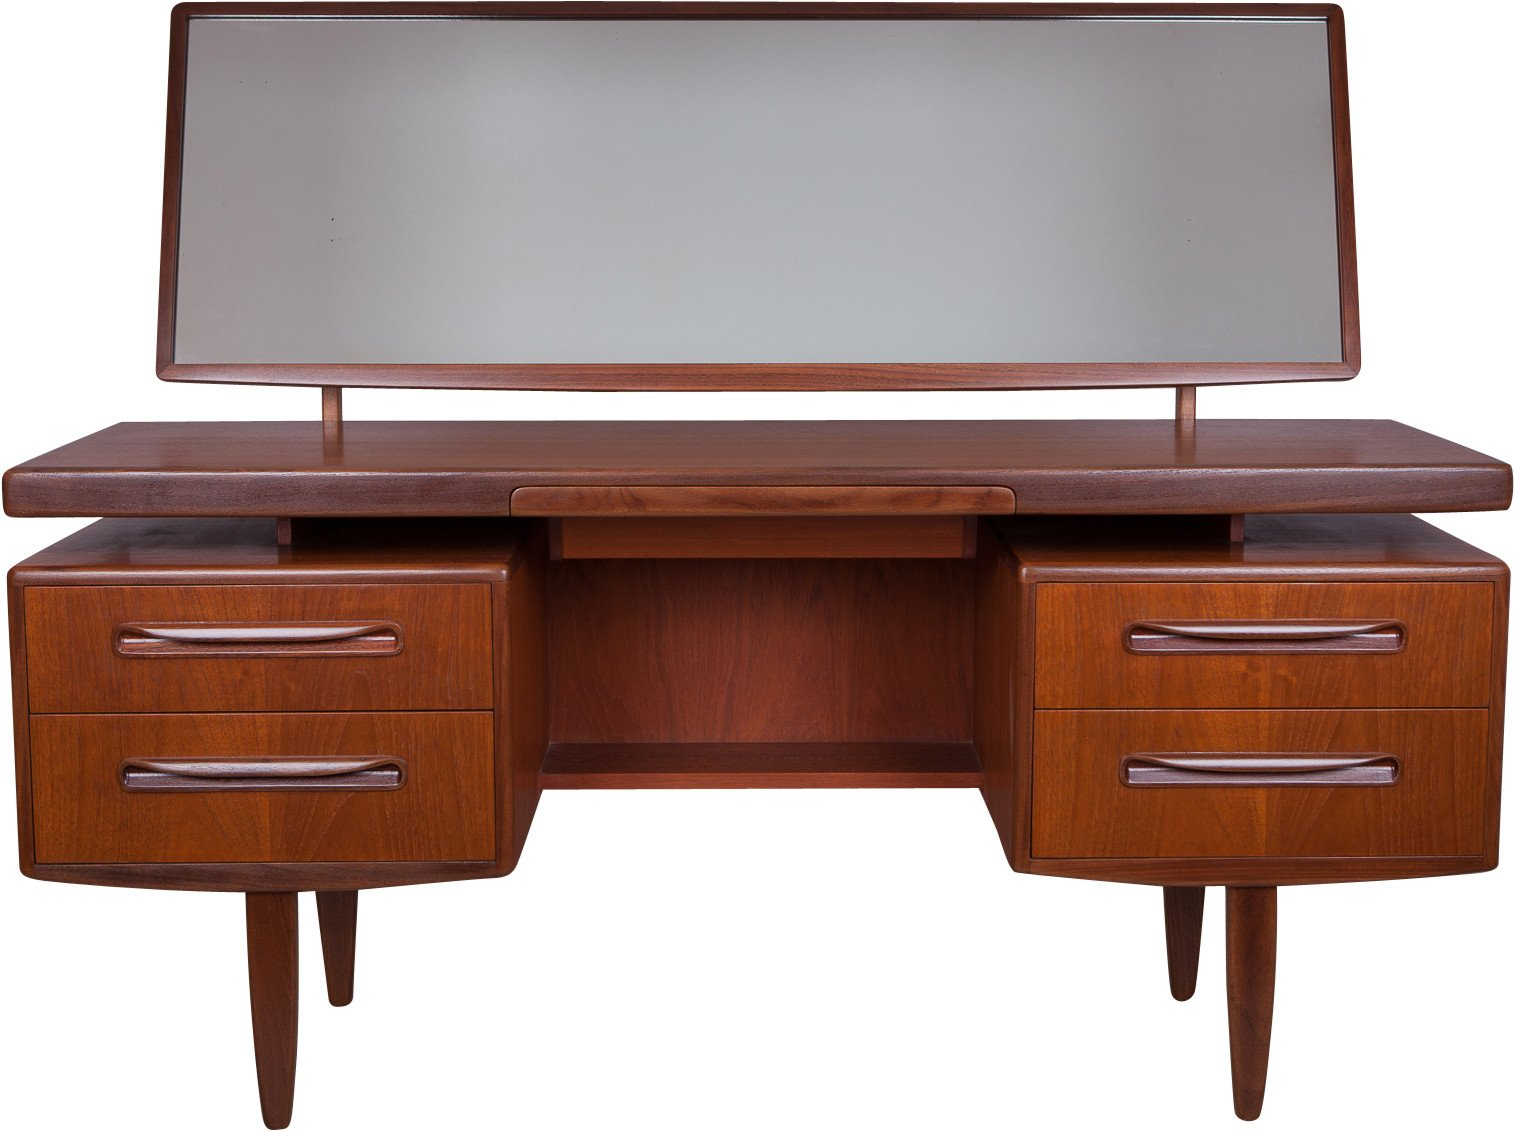 Teak Dressing Table by V. Wilkins for G-Plan, Great Britain, 1960s